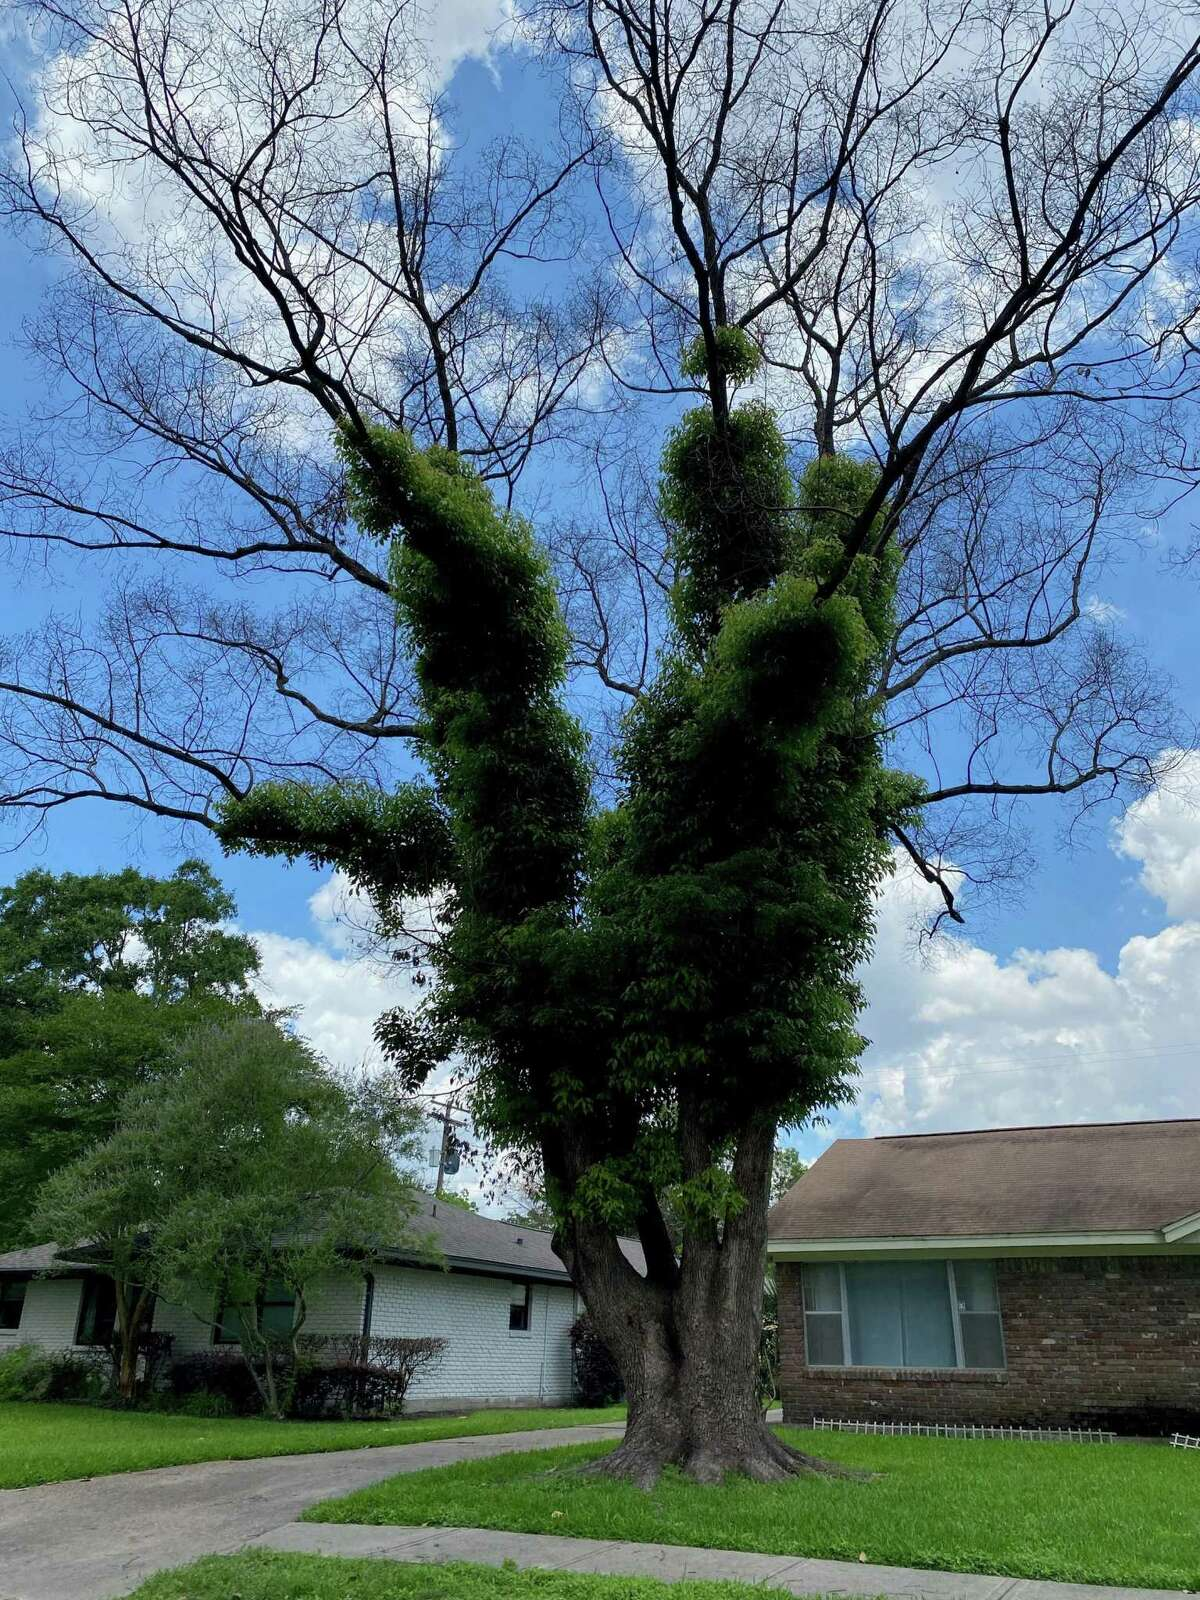 The tree in this front yard is an example of a zombie trees, half dead and half alive. It was damaged by Winter Storm Uri, with many branches left bare - and dead - but new green shoots coming from the center of the tree.